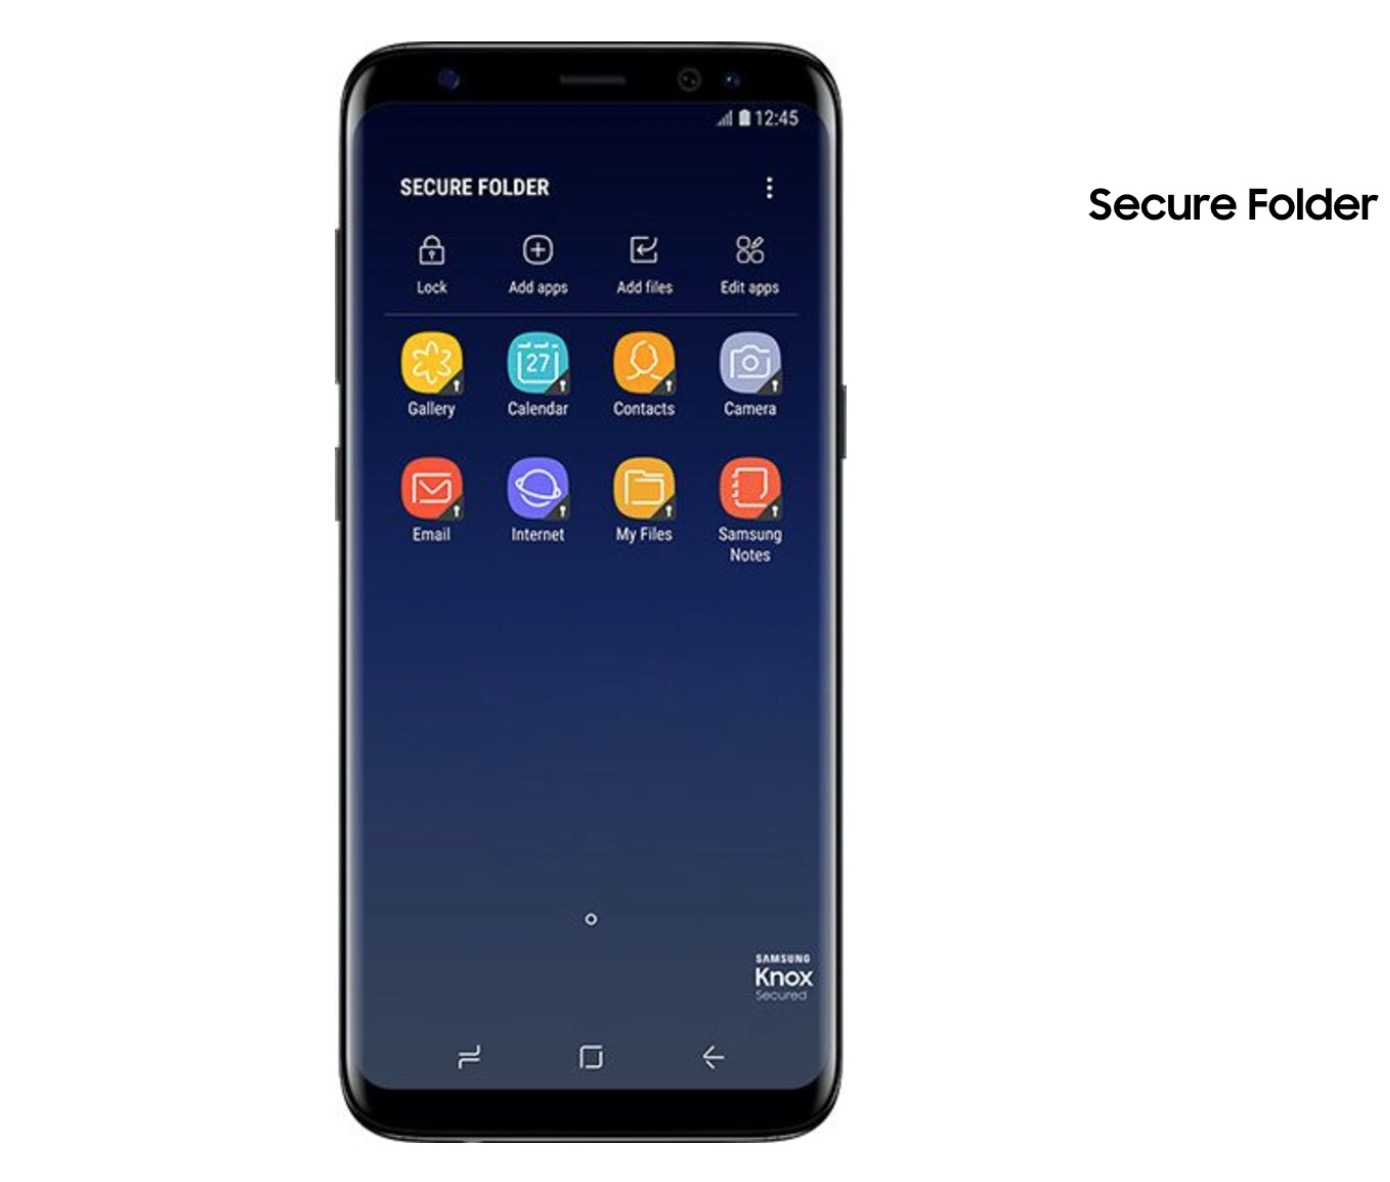 How to move pictures from secure folder s8